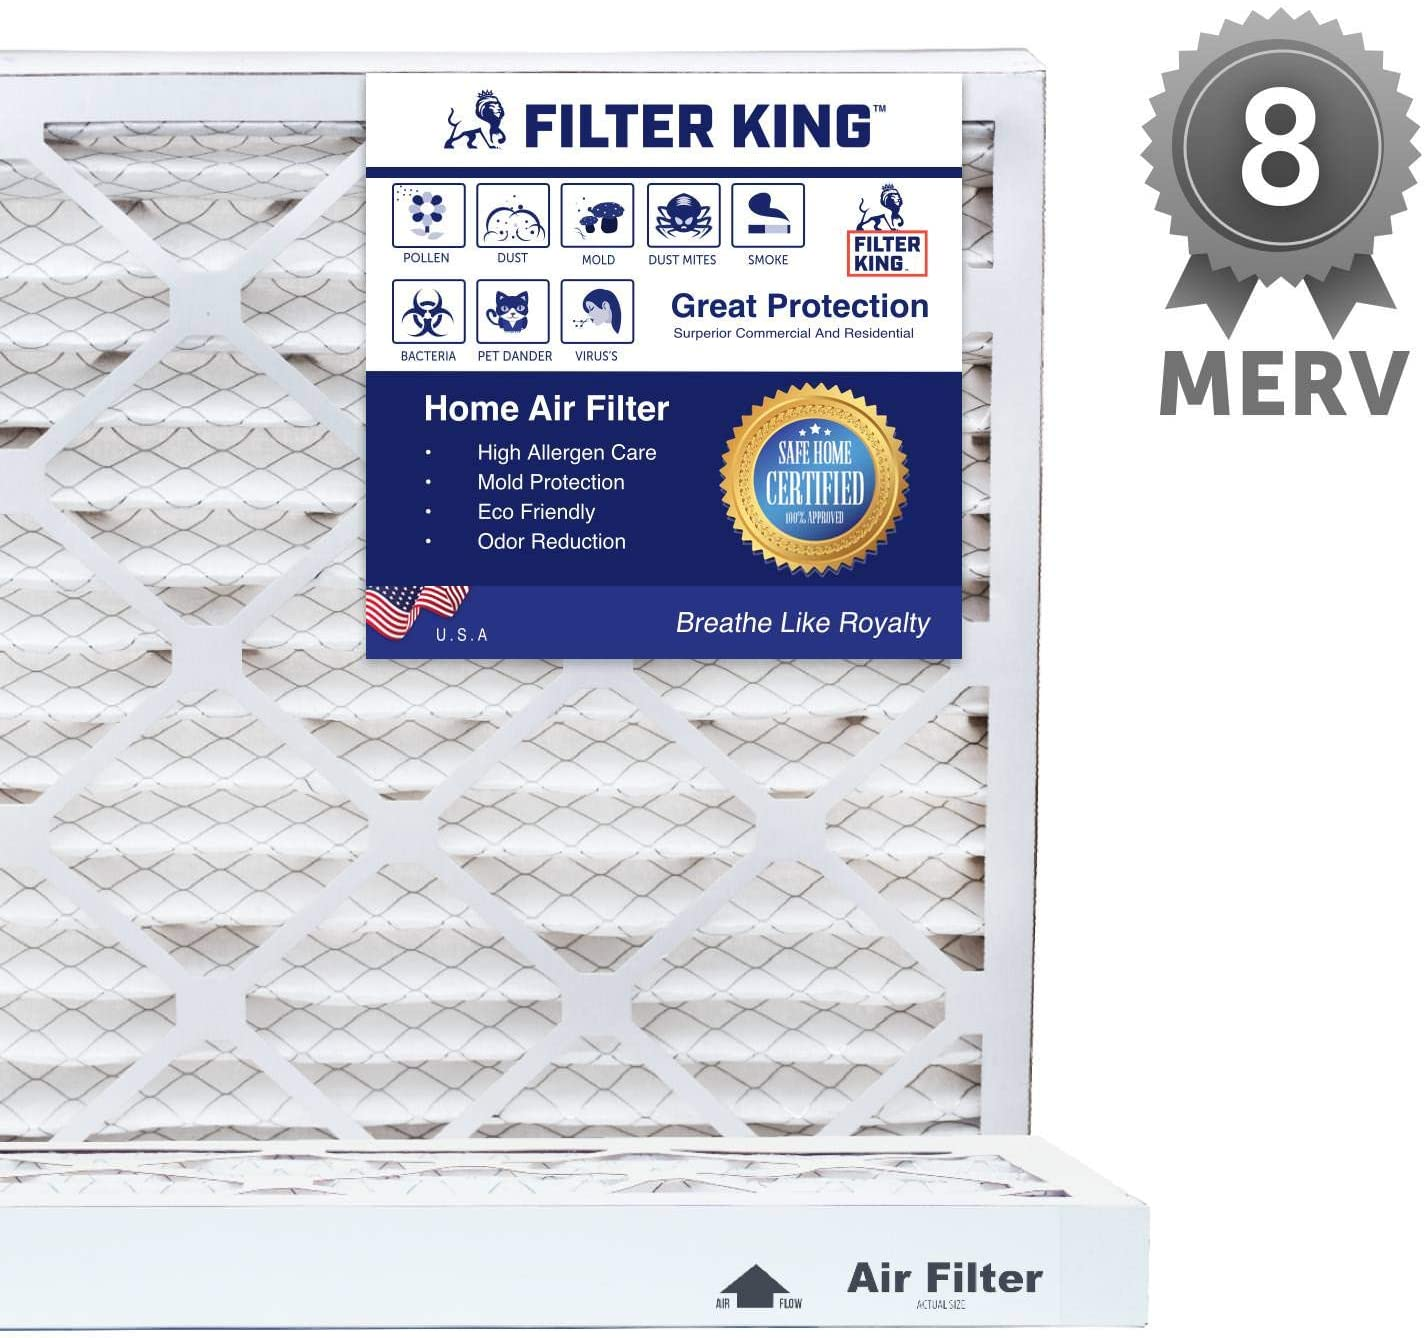 Nordic Pure 12x36x1 Exact MERV 8 Pure Carbon Pleated Odor Reduction AC Furnace Air Filters 1 Pack